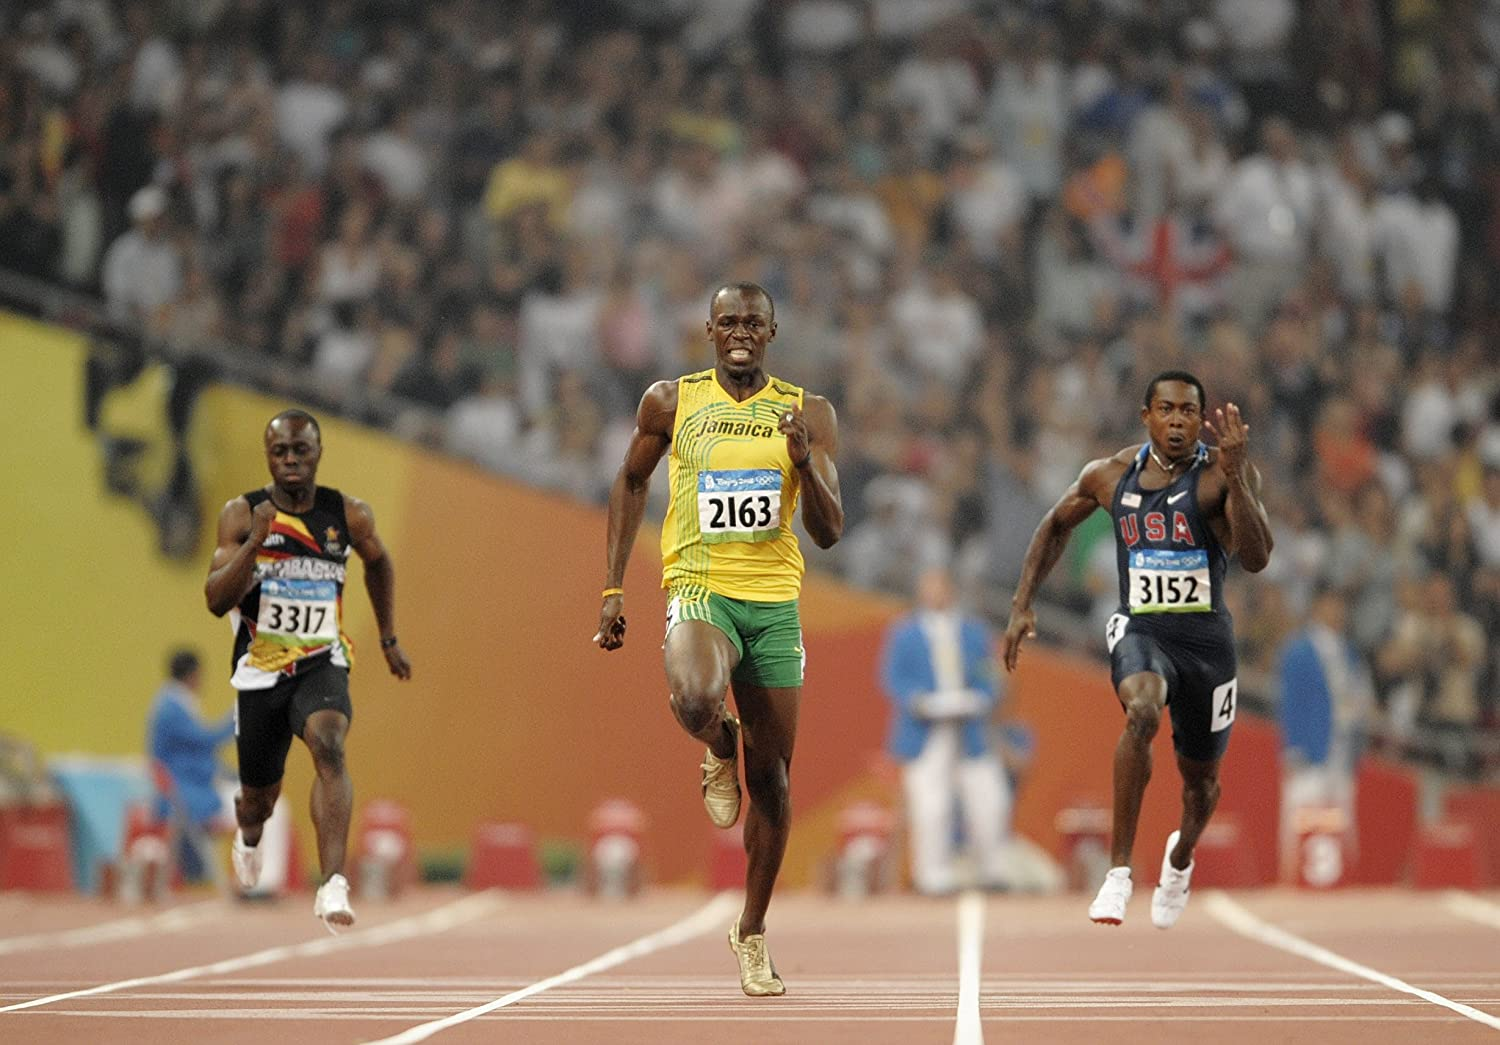 Usain Bolt Olympic Athlete Large Wall Art Poster Print